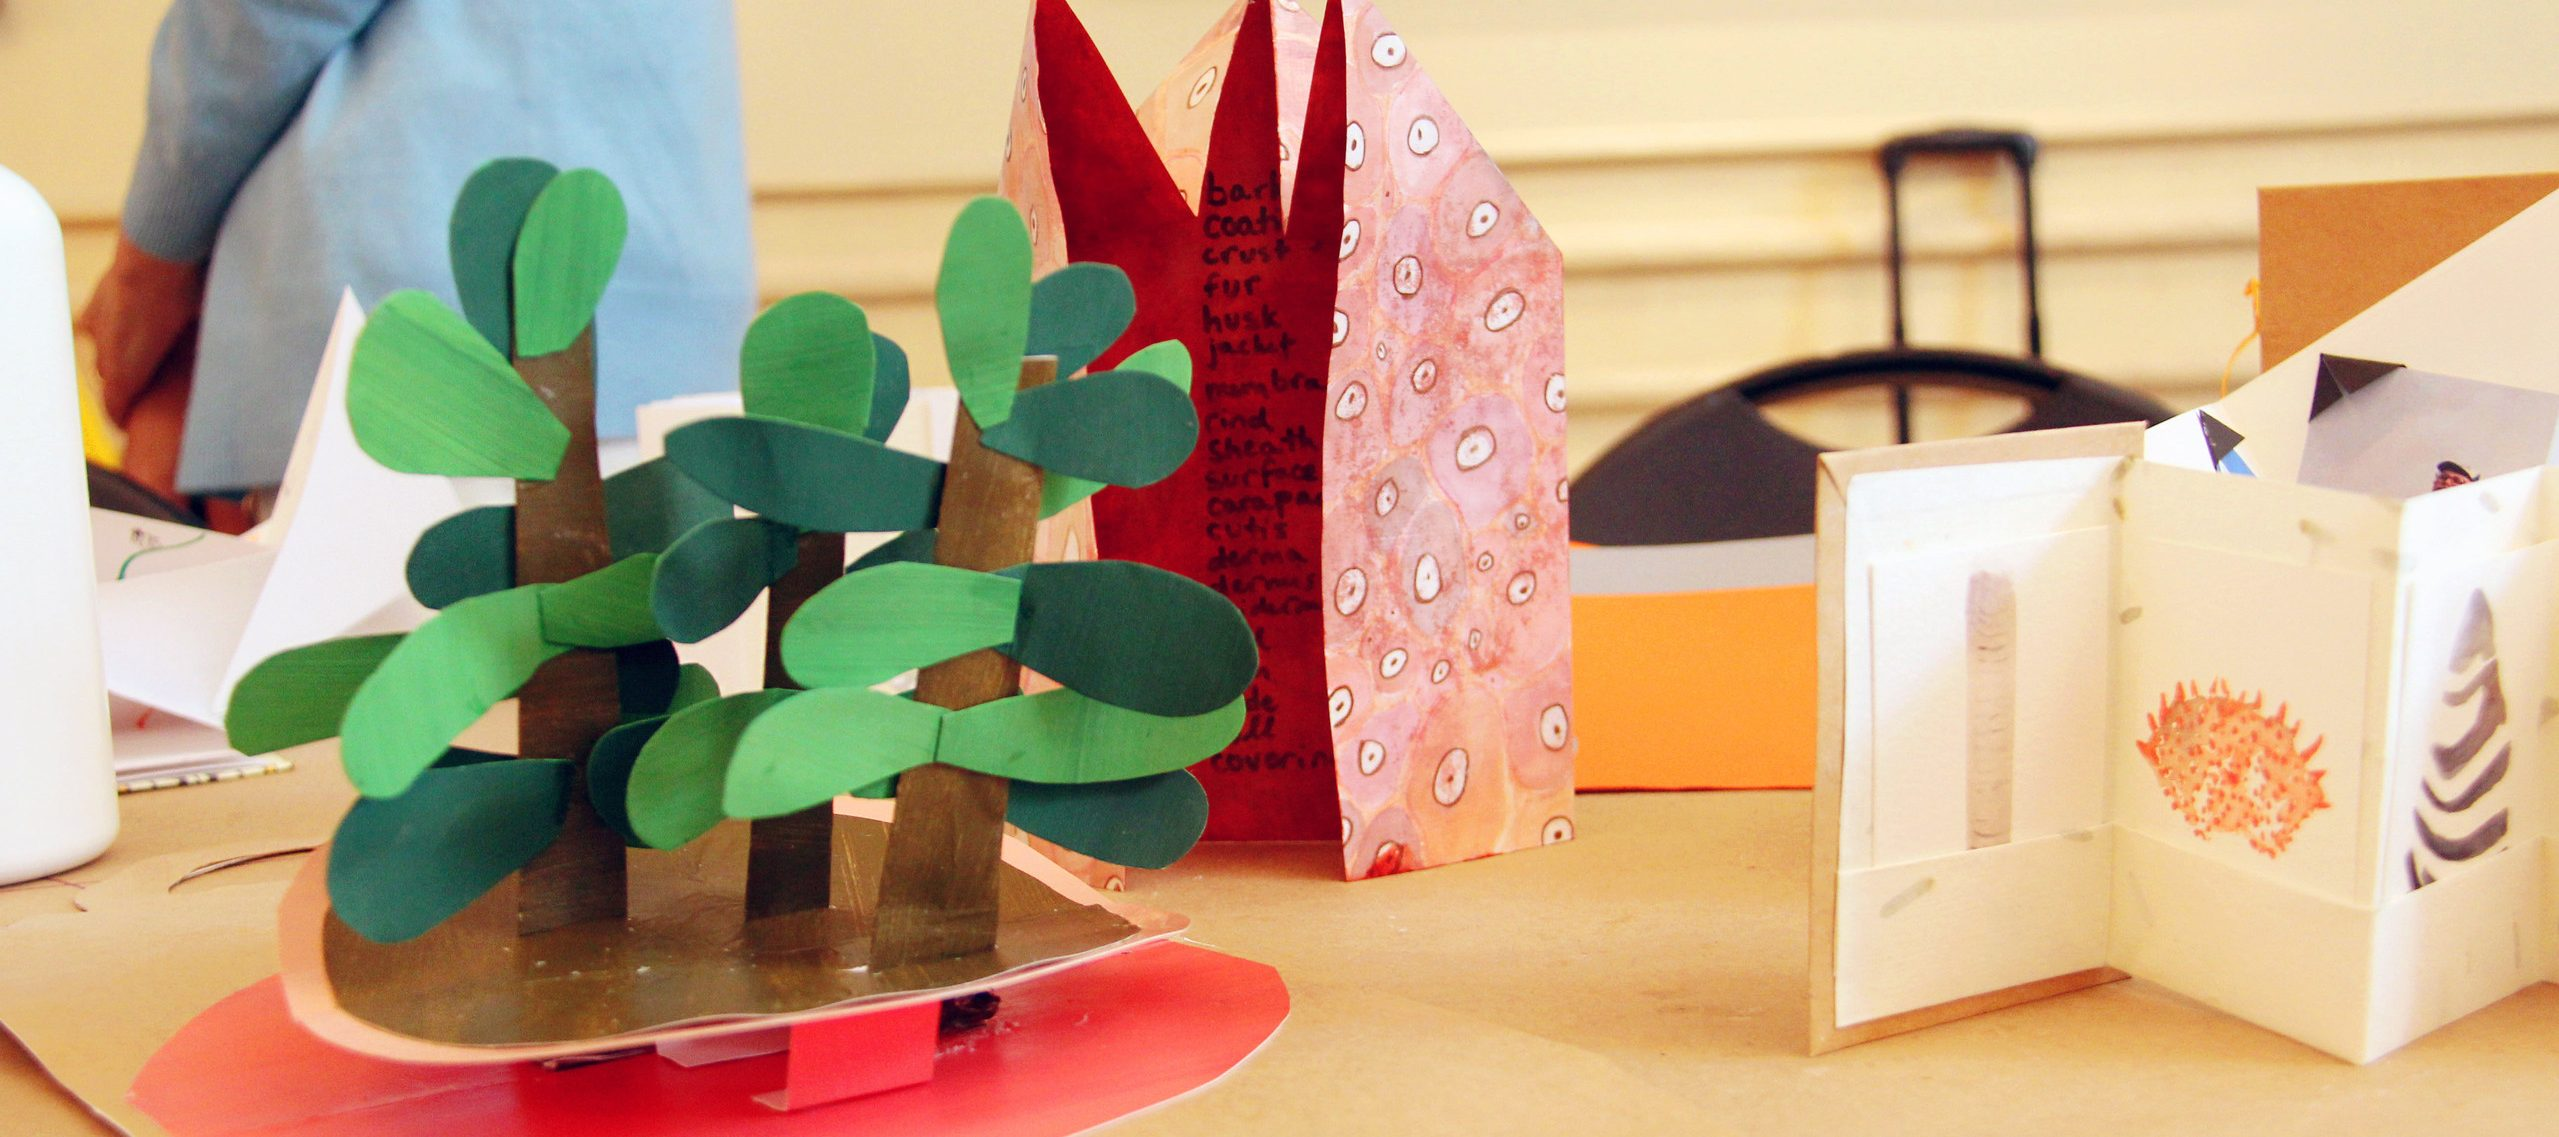 Folded paper books are displayed on a wood table.